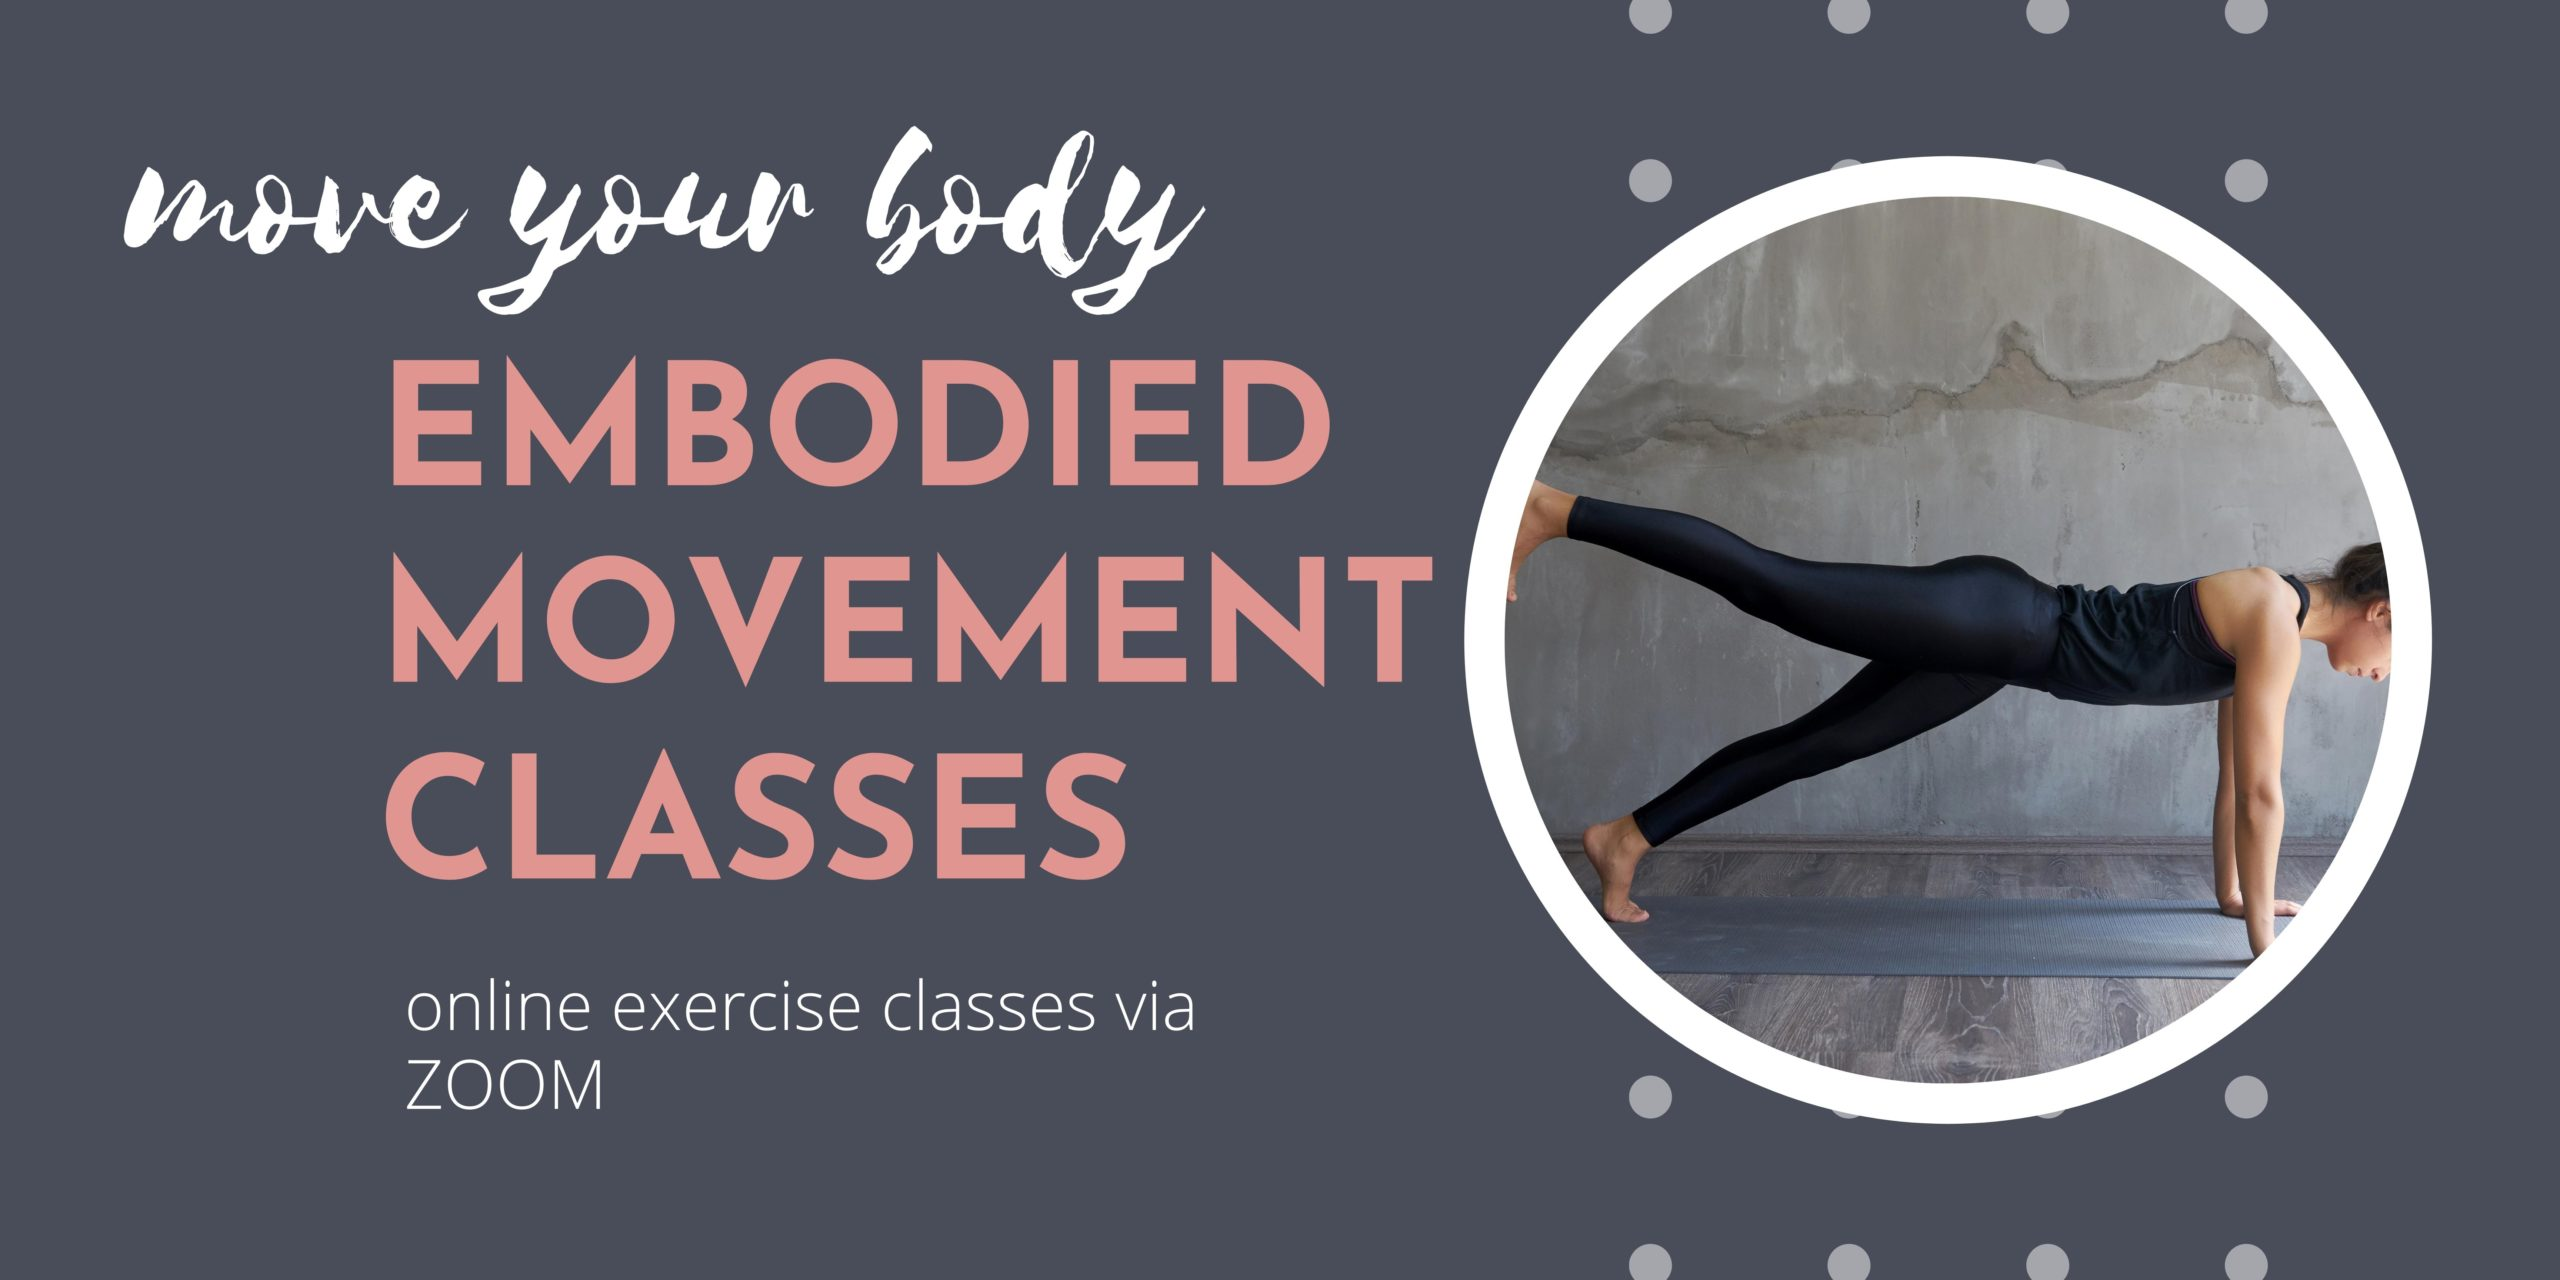 online exercise classes, online courses, embodiment, movement class